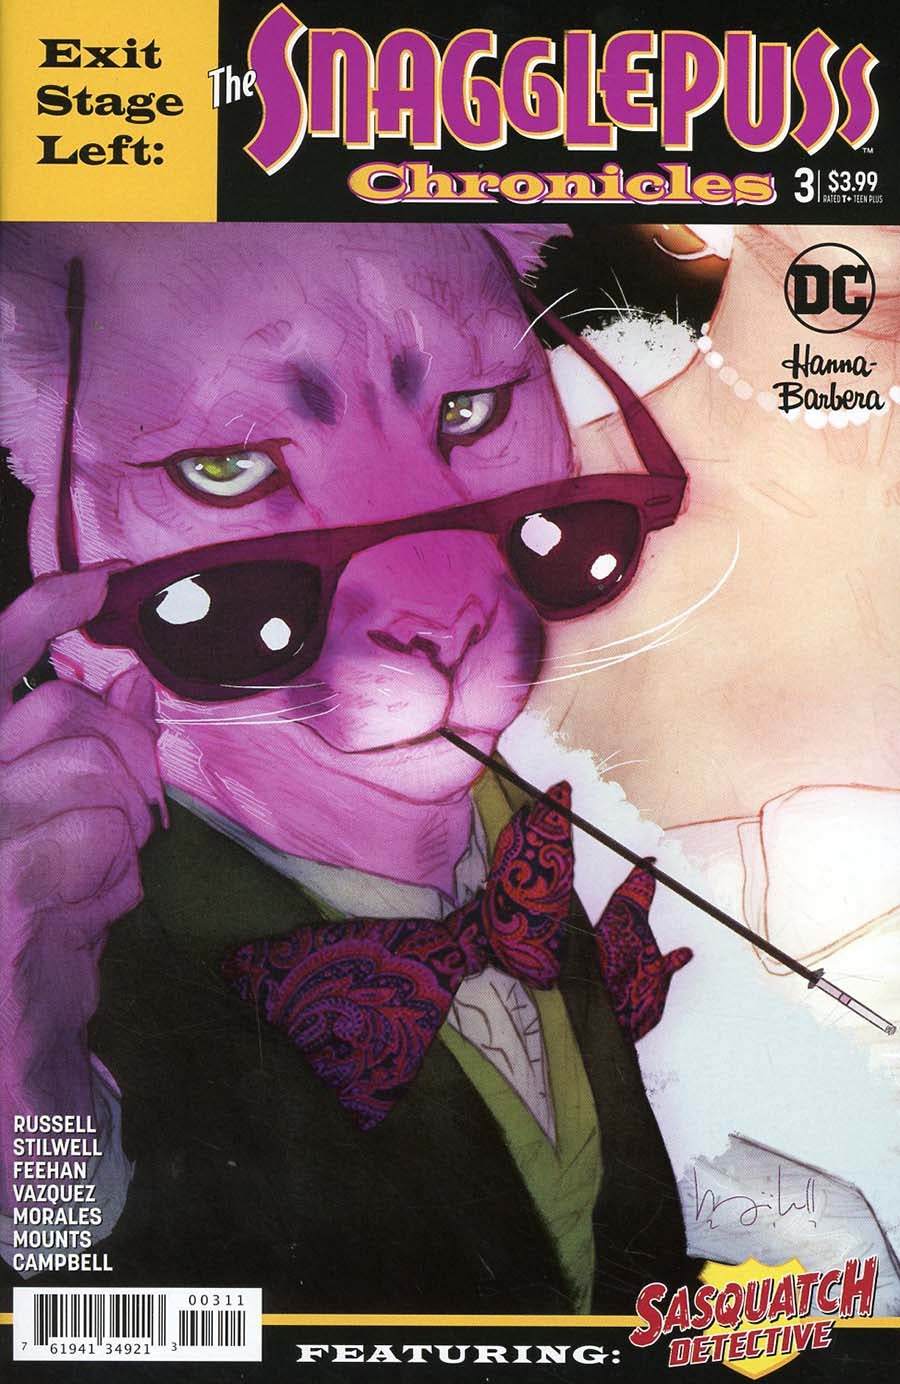 Exit Stage Left: The Snagglepuss Chronicles (2018) Issue 3